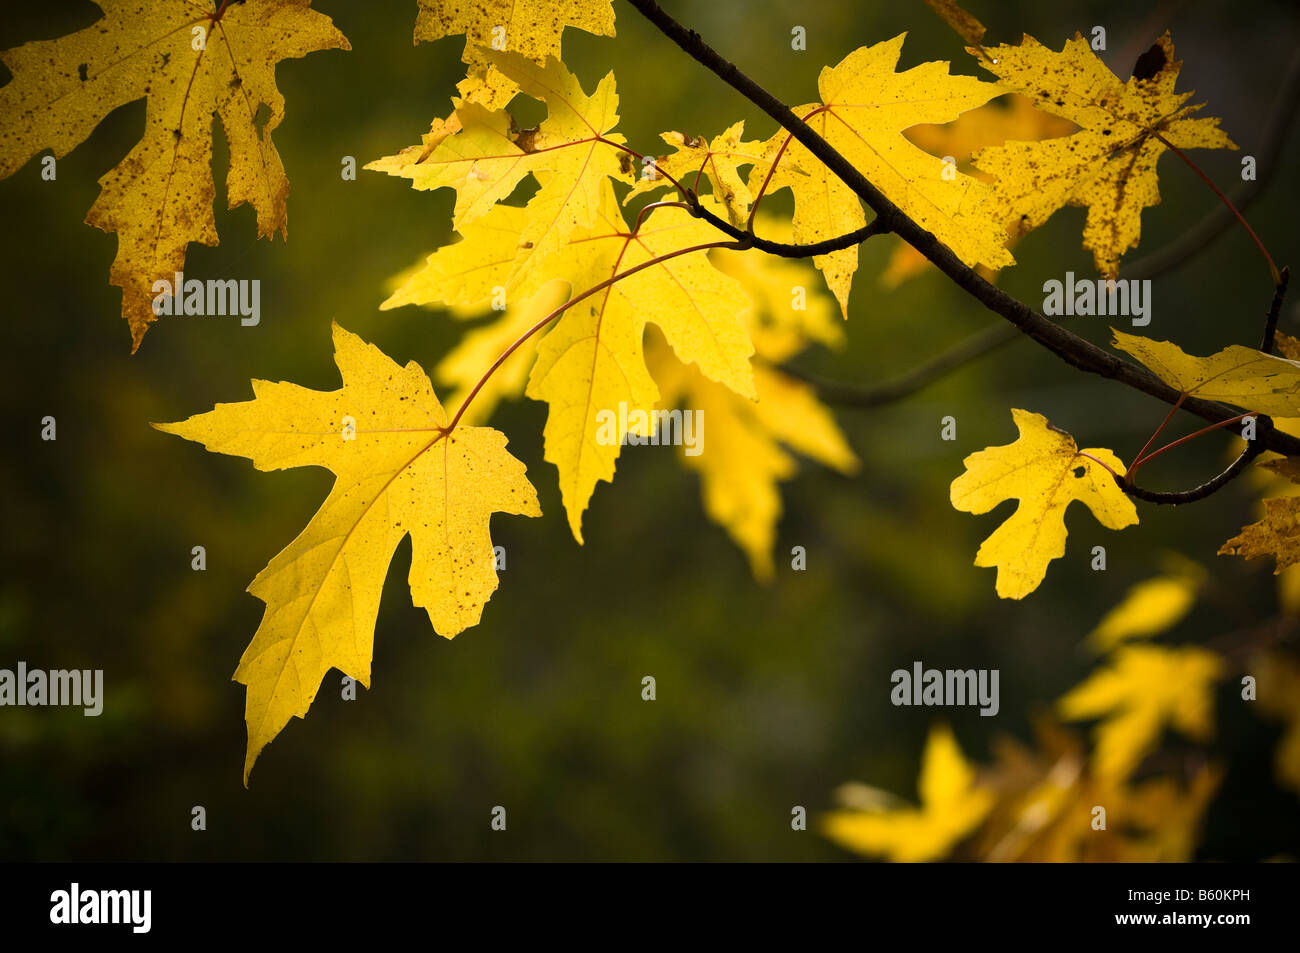 Silver maple tree leaves in Fall. - Stock Image